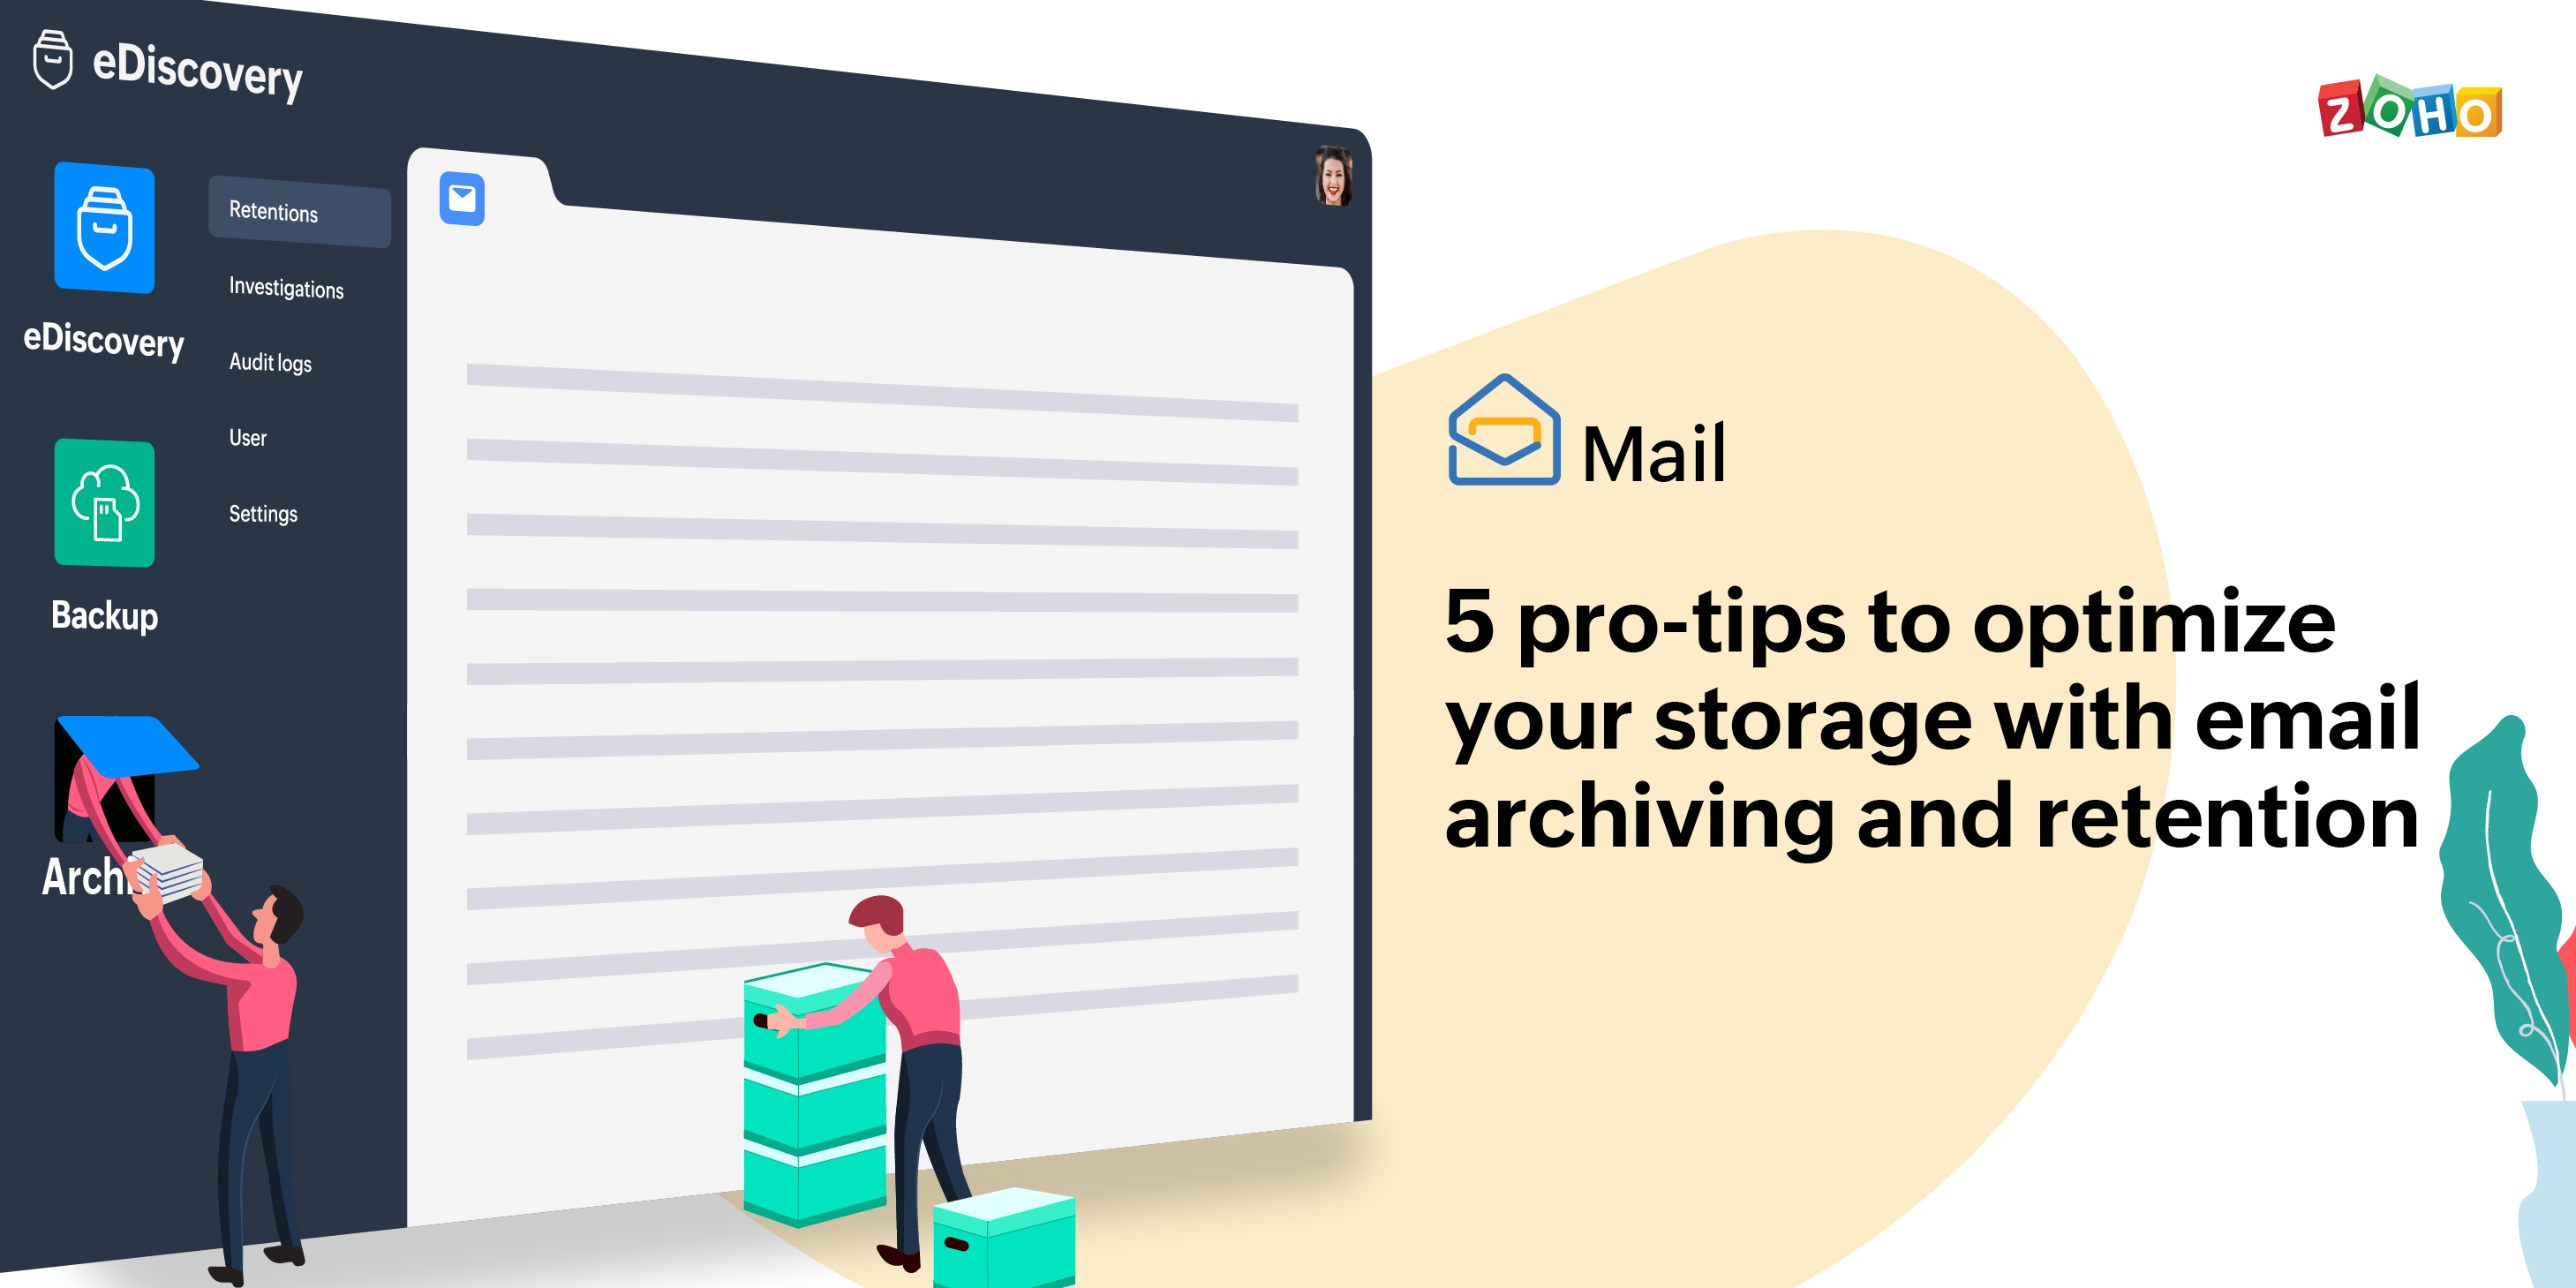 5 pro-tips to optimize your storage with Email Archiving and Retention